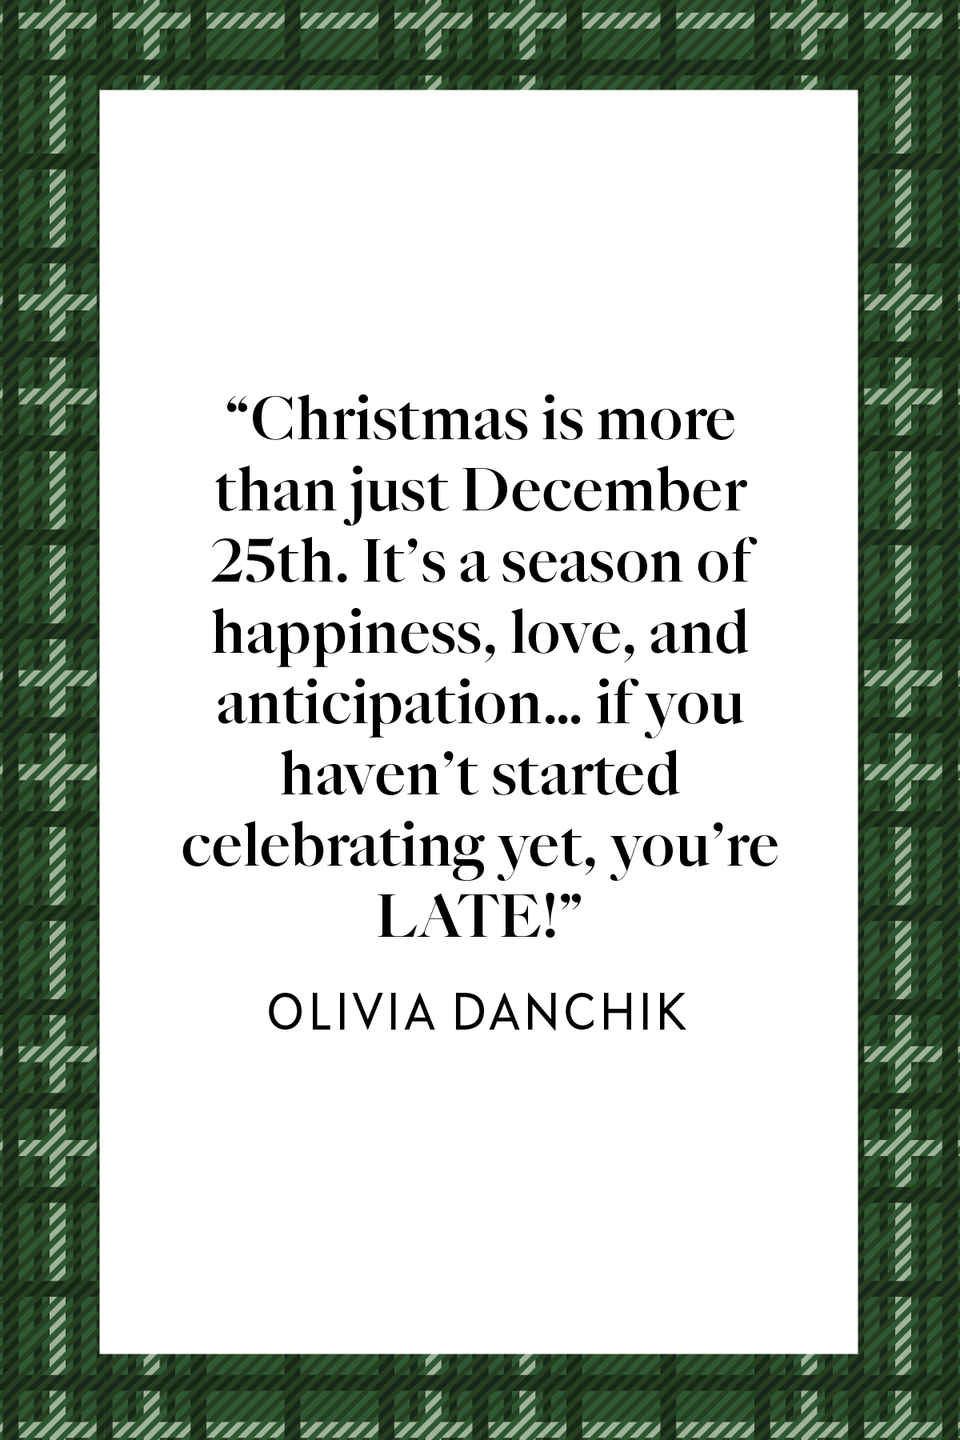 "<p>Olivia Danchik wrote in her 2014 <em><a href=""https://thoughtcatalog.com/olivia-danchik/2014/12/16-reasons-the-christmas-season-is-truly-the-most-wonderful-time-of-the-year/"" rel=""nofollow noopener"" target=""_blank"" data-ylk=""slk:Thought Catalog"" class=""link rapid-noclick-resp"">Thought Catalog</a> </em>article, ""Christmas is more than just December 25th. It's a season of happiness, love, and anticipation… if you haven't started celebrating yet, you're LATE!""</p>"